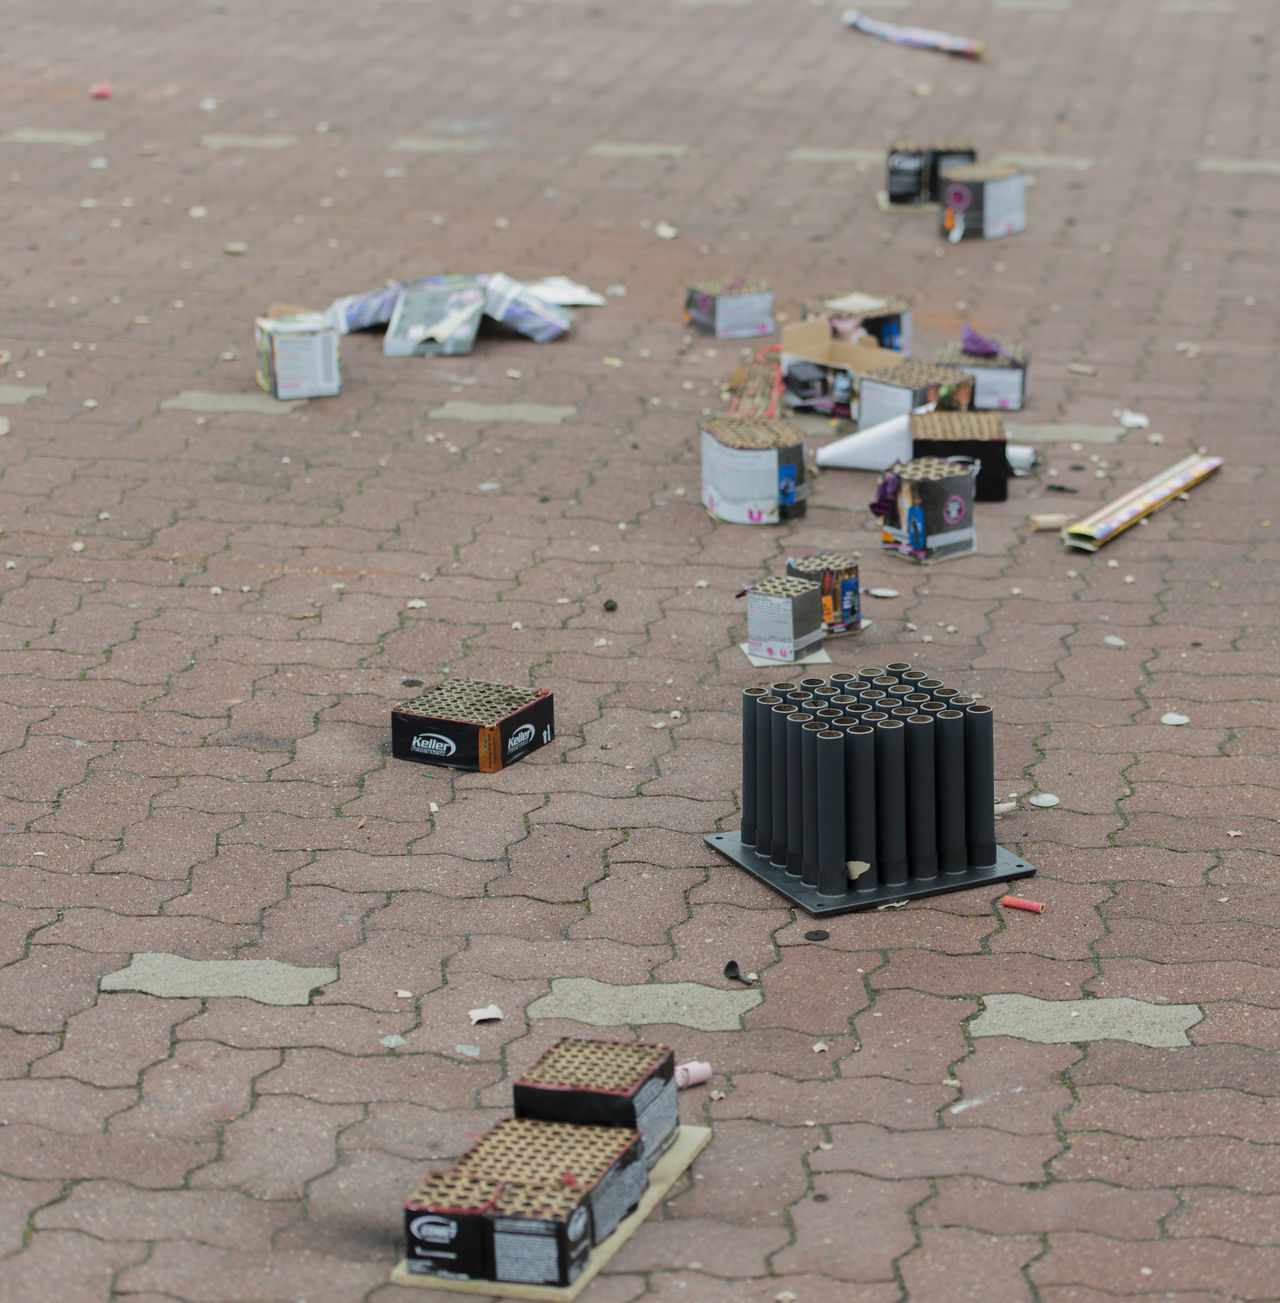 New Year's Eve fireworks garbage 31.12 Backgrounds Clear Up Crack December Dirty Environmental Pollution Exploding Explosive Devices Fireworks Fireworks Garbage Garbage New Year Fireworks New Year's Day New Year's Eve New Year's Eve Garbage New Year's Eve Rocket New Year's Eves Mud Pyrotechnics Saluting Gun